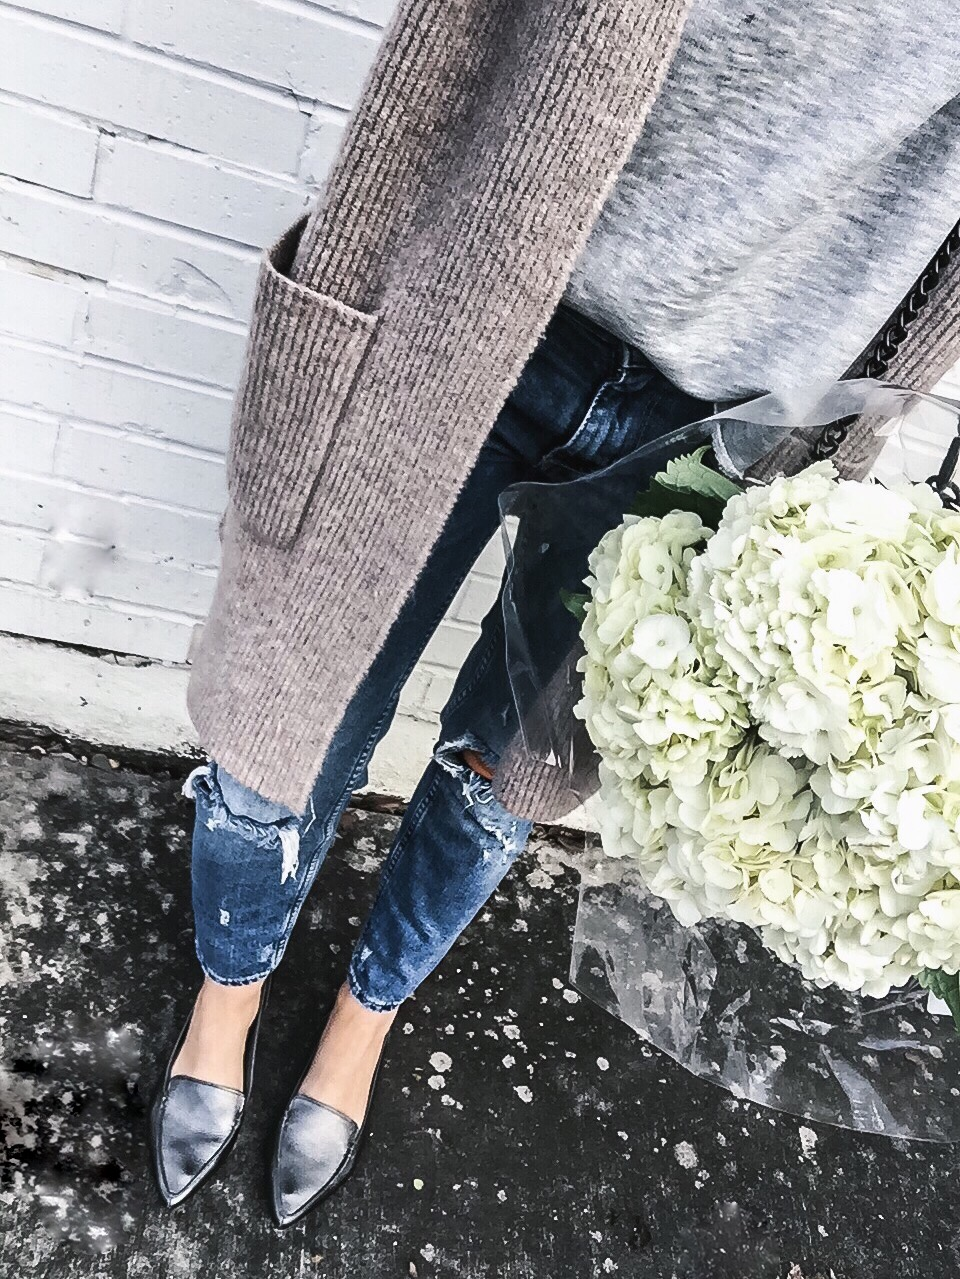 Houston fashion and style blogger Tiffany Jais wearing distressed skinny jeans from Shopbop and a Maxwell cardigan | Women's fashion